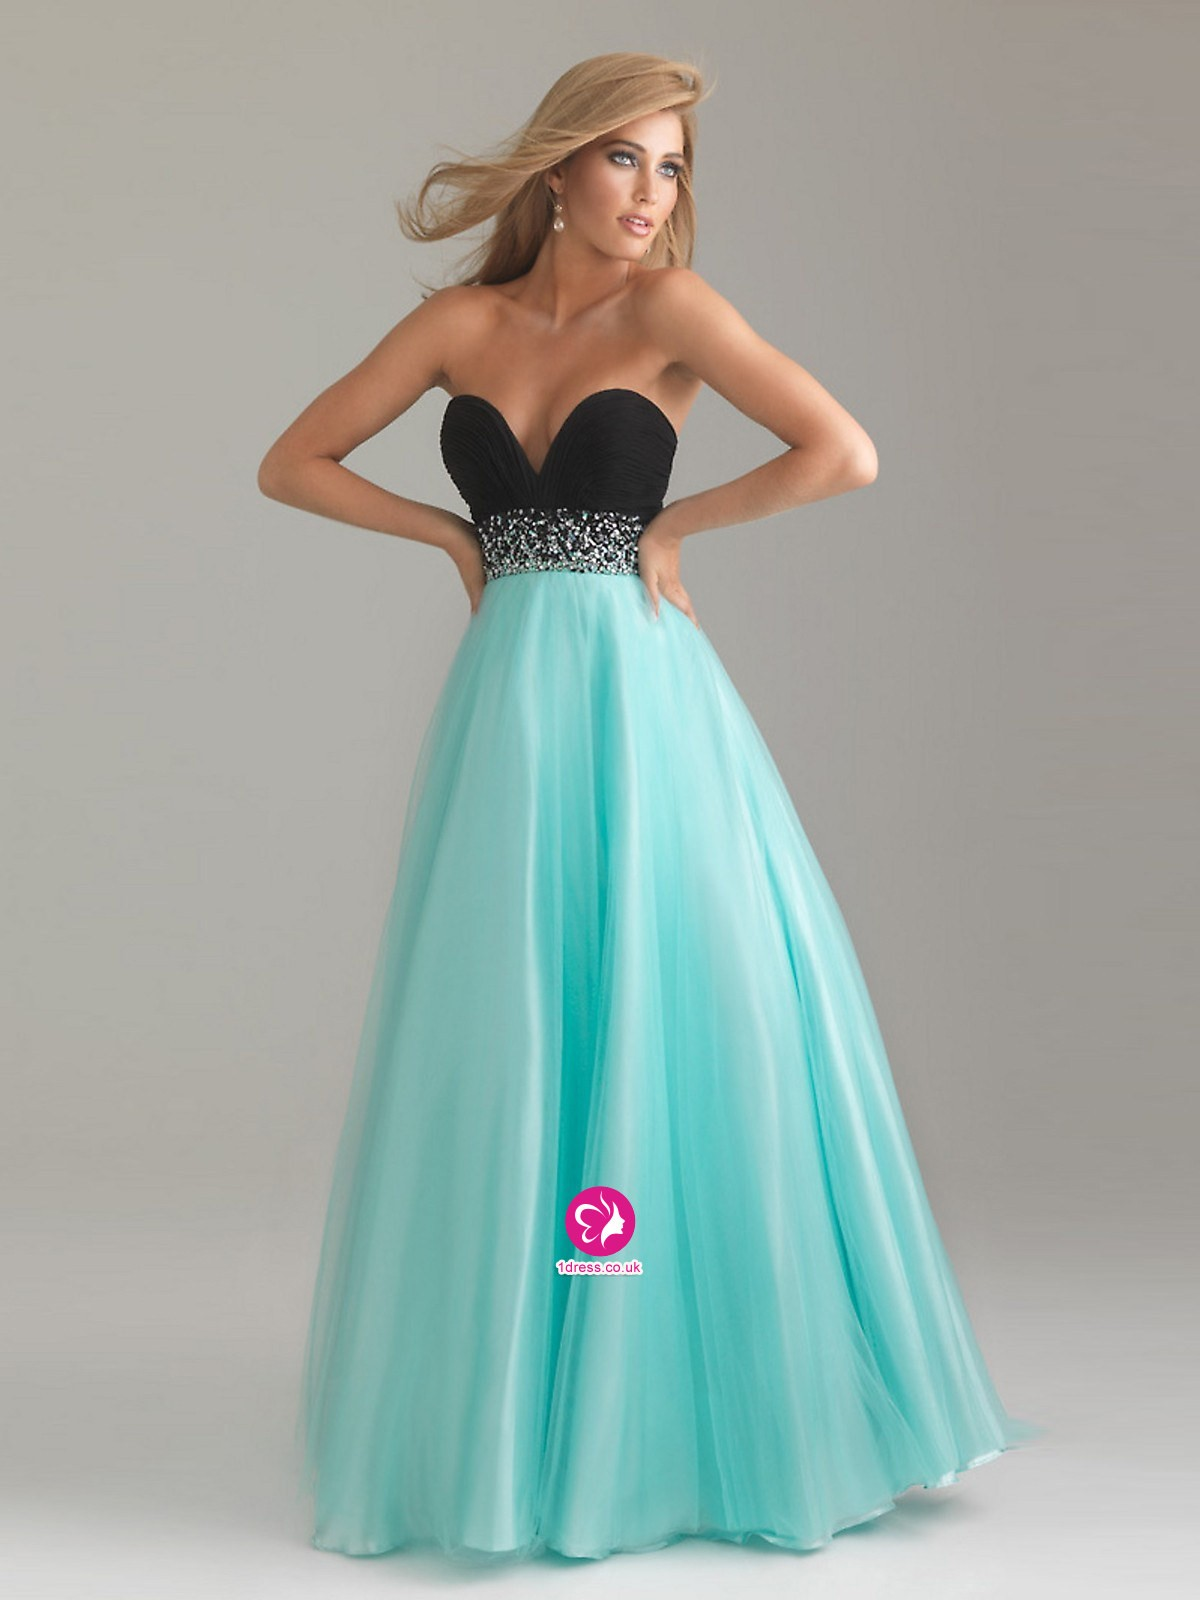 Slutty Prom Dresses Tumblr | Dress images